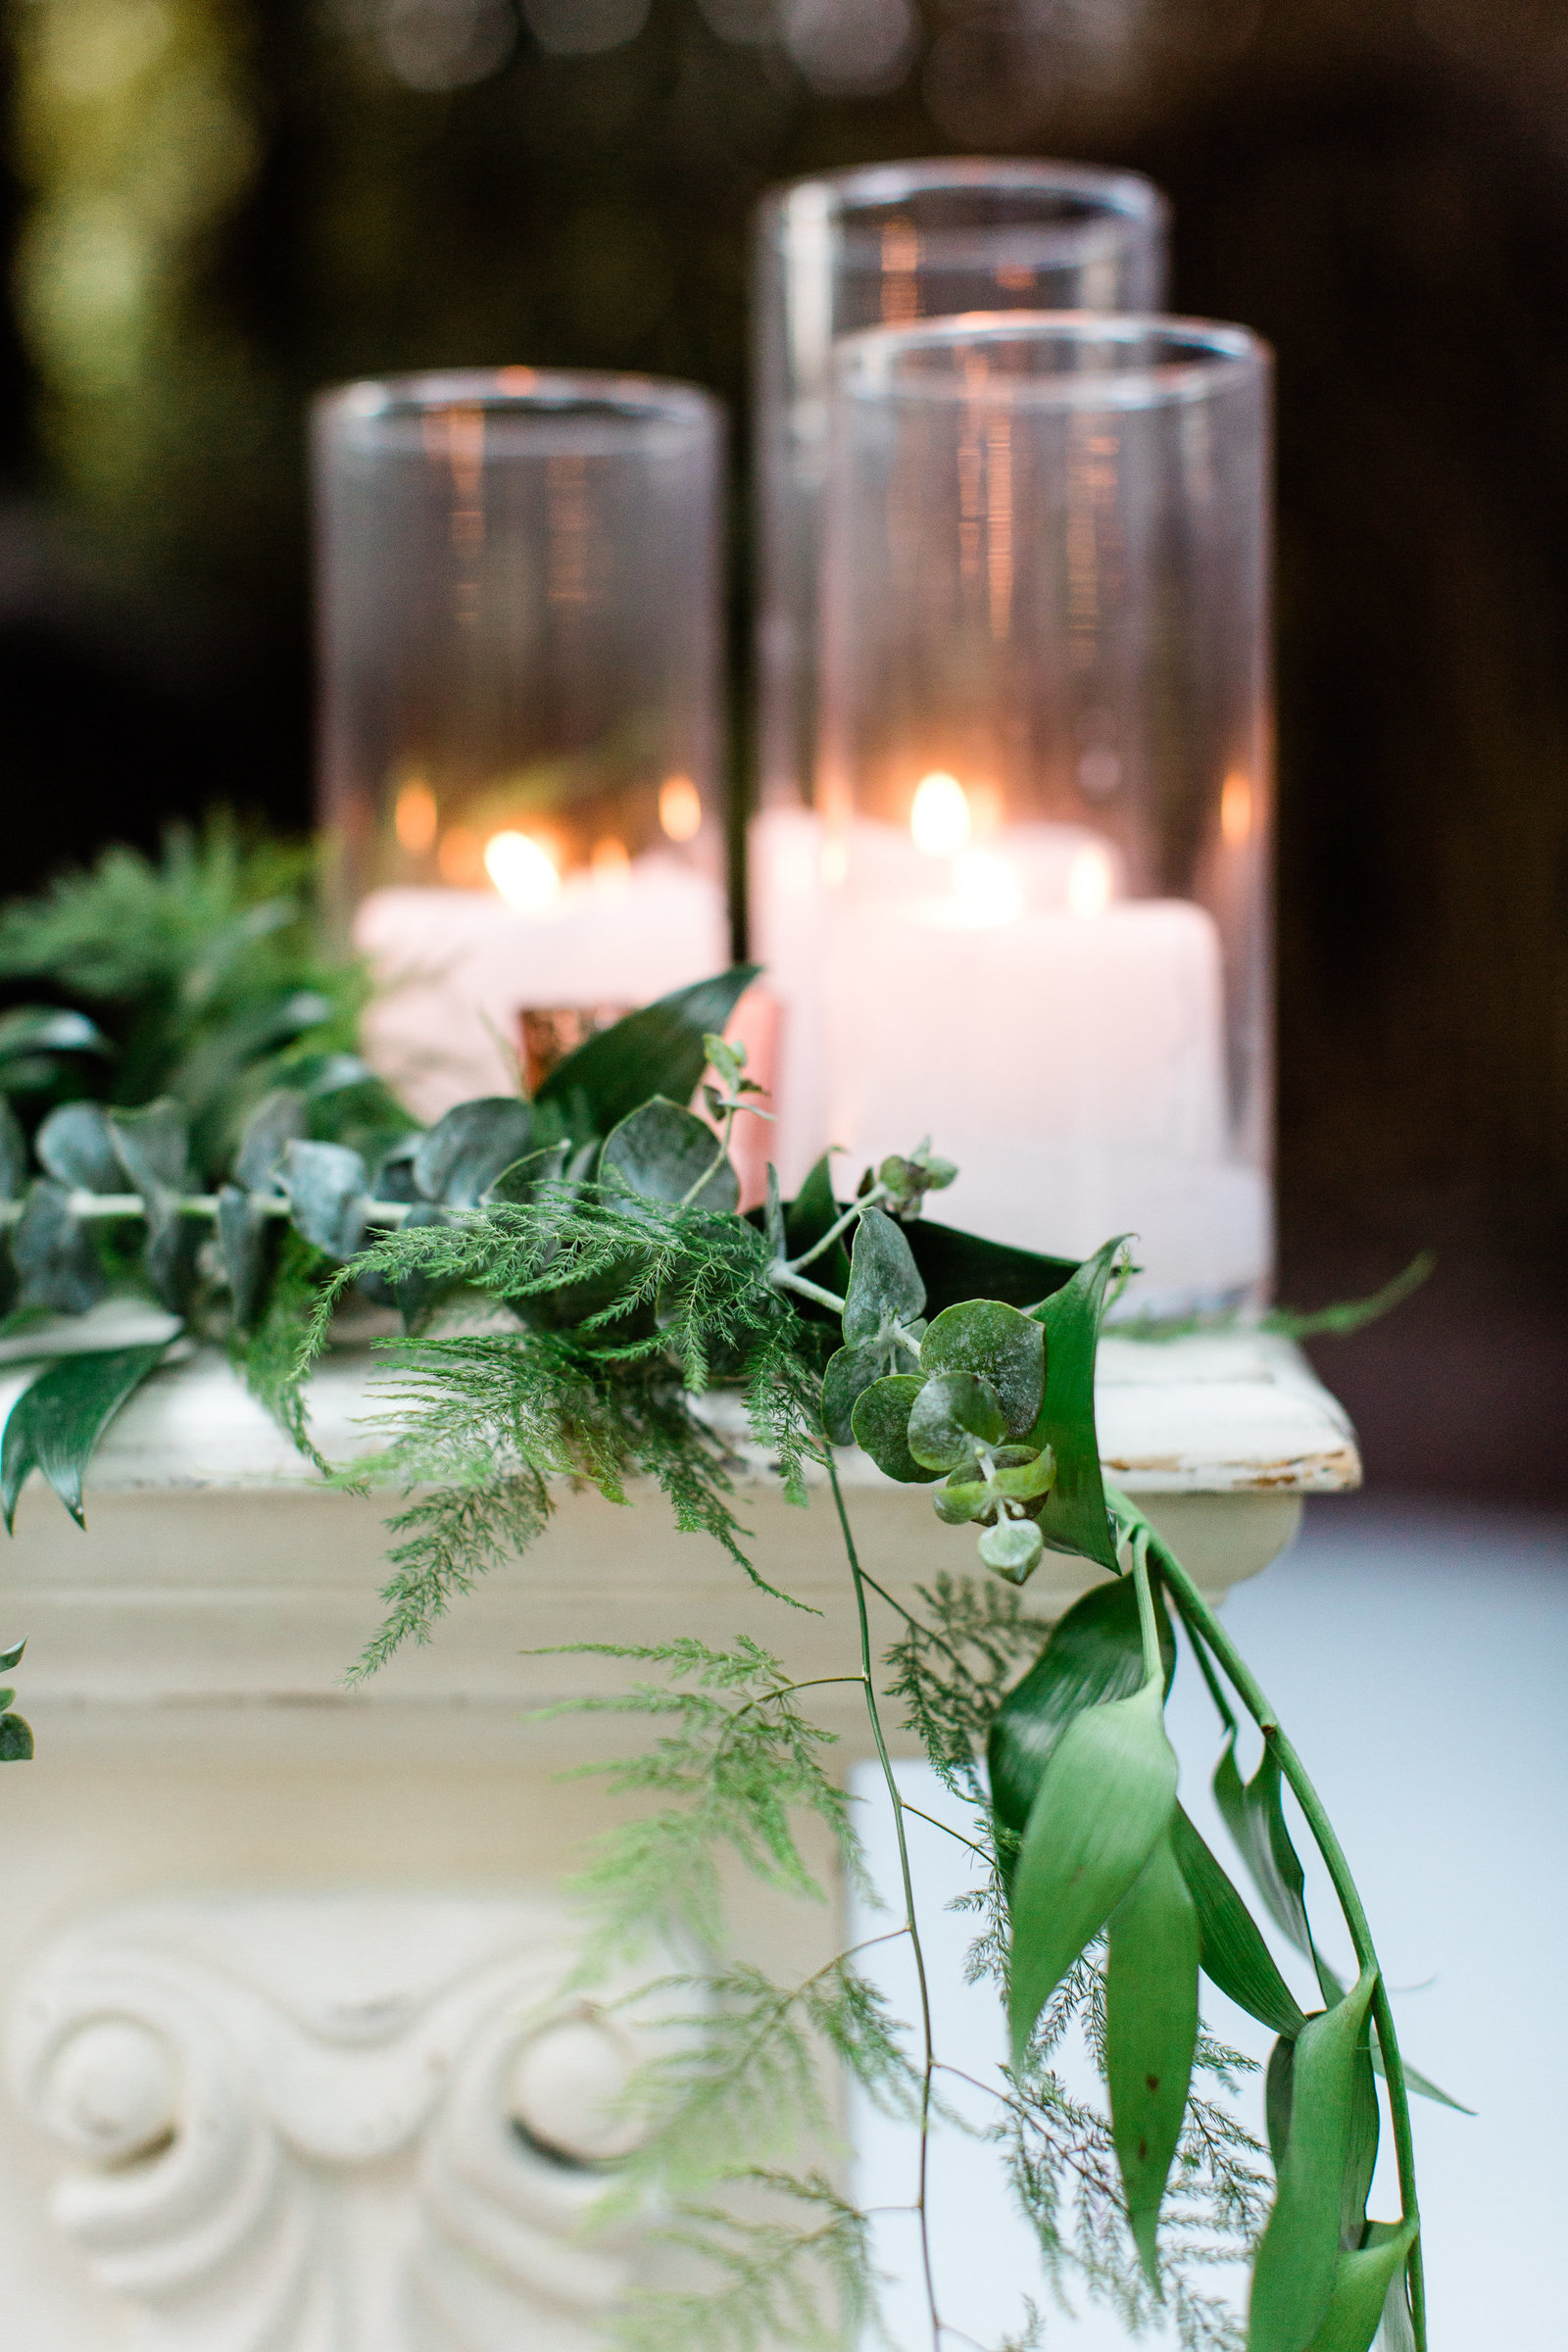 Calamigos-Ranch-Wedding-Ceremony-Candles